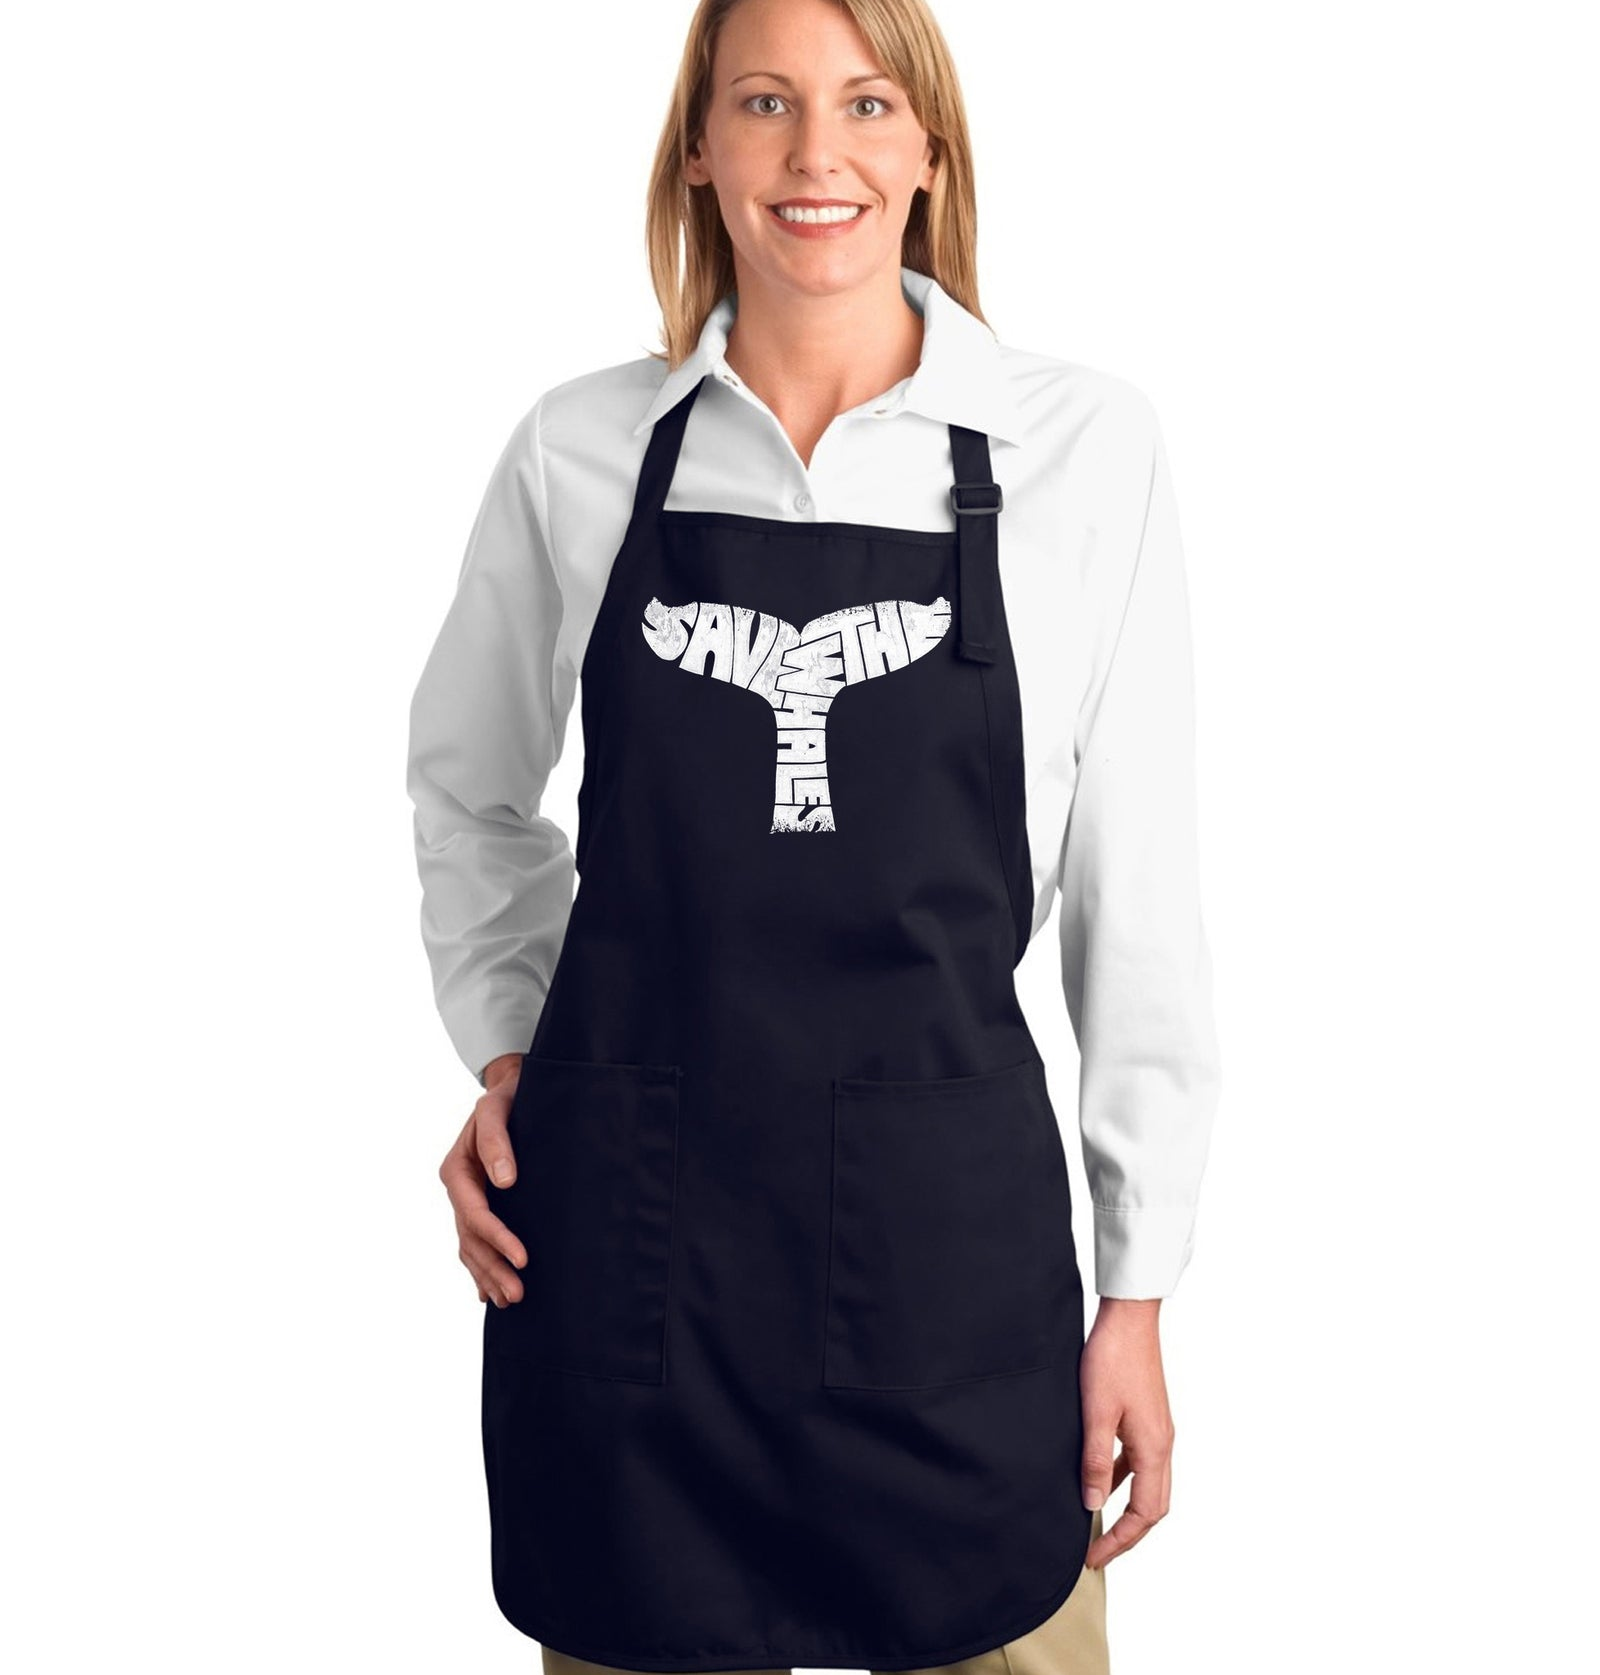 Full Length Apron - SAVE THE WHALES